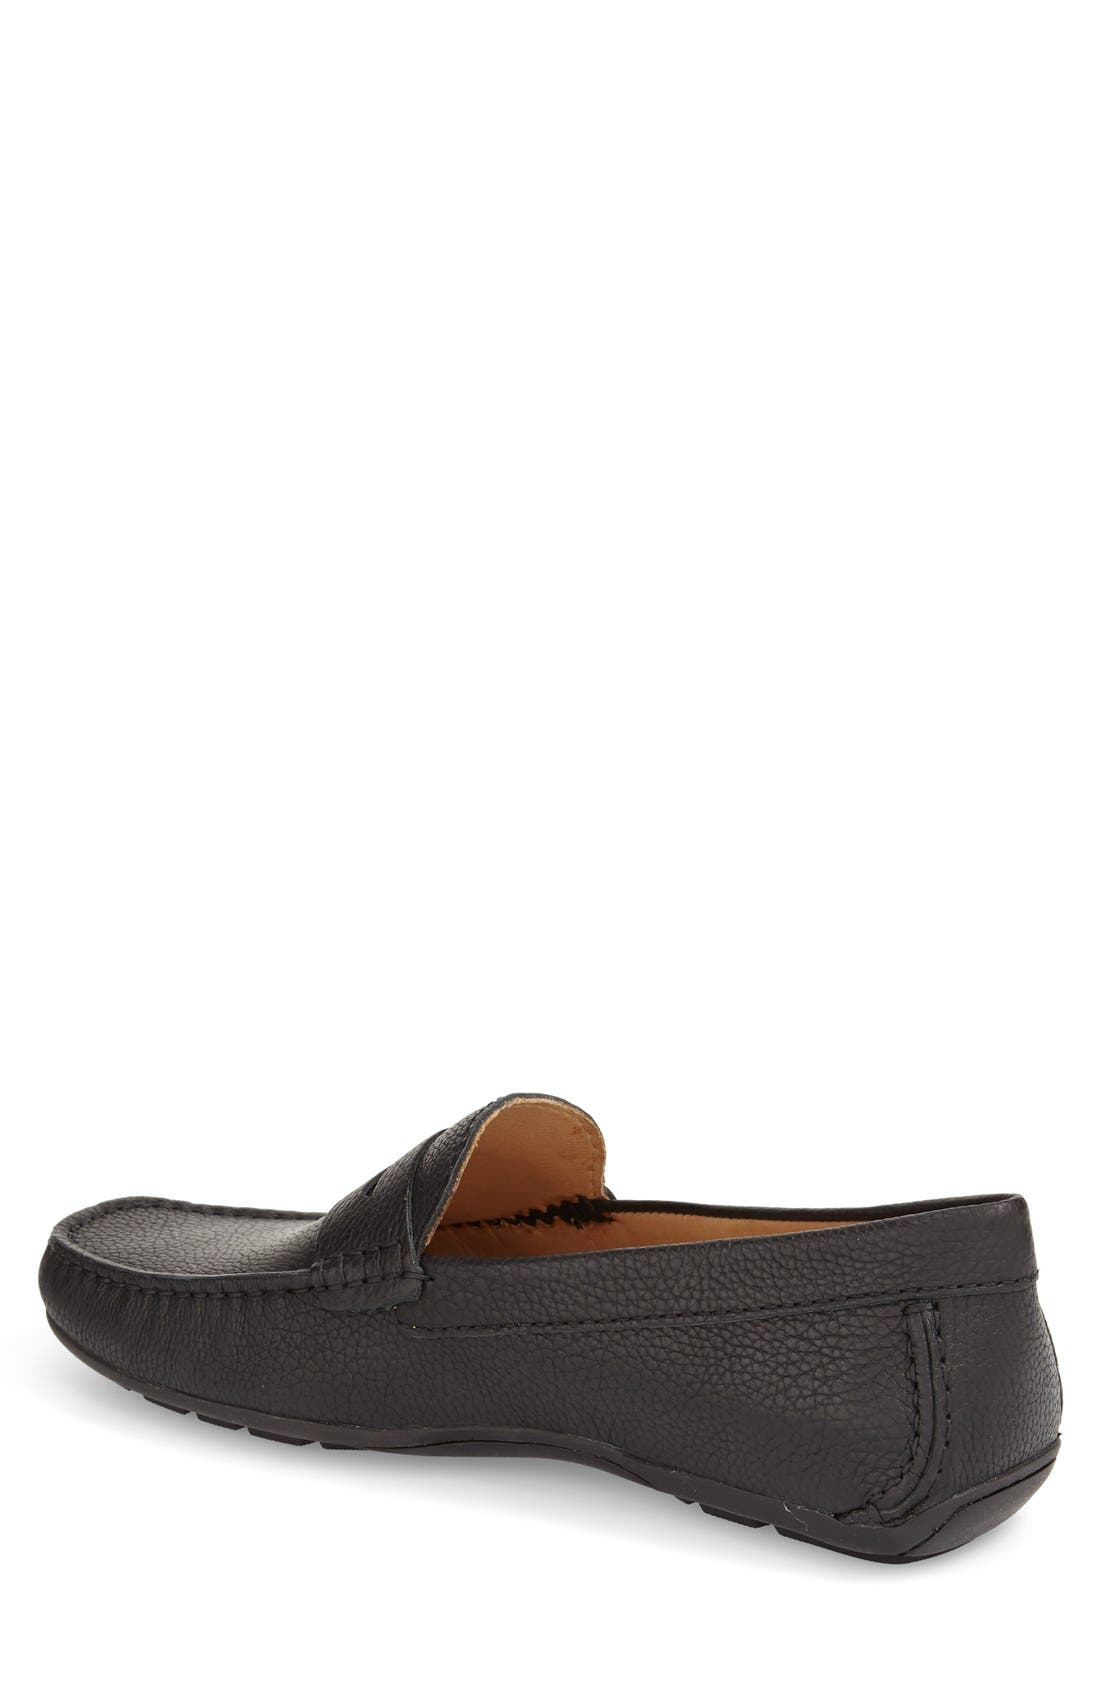 'Union Street' Penny Loafer,                             Alternate thumbnail 5, color,